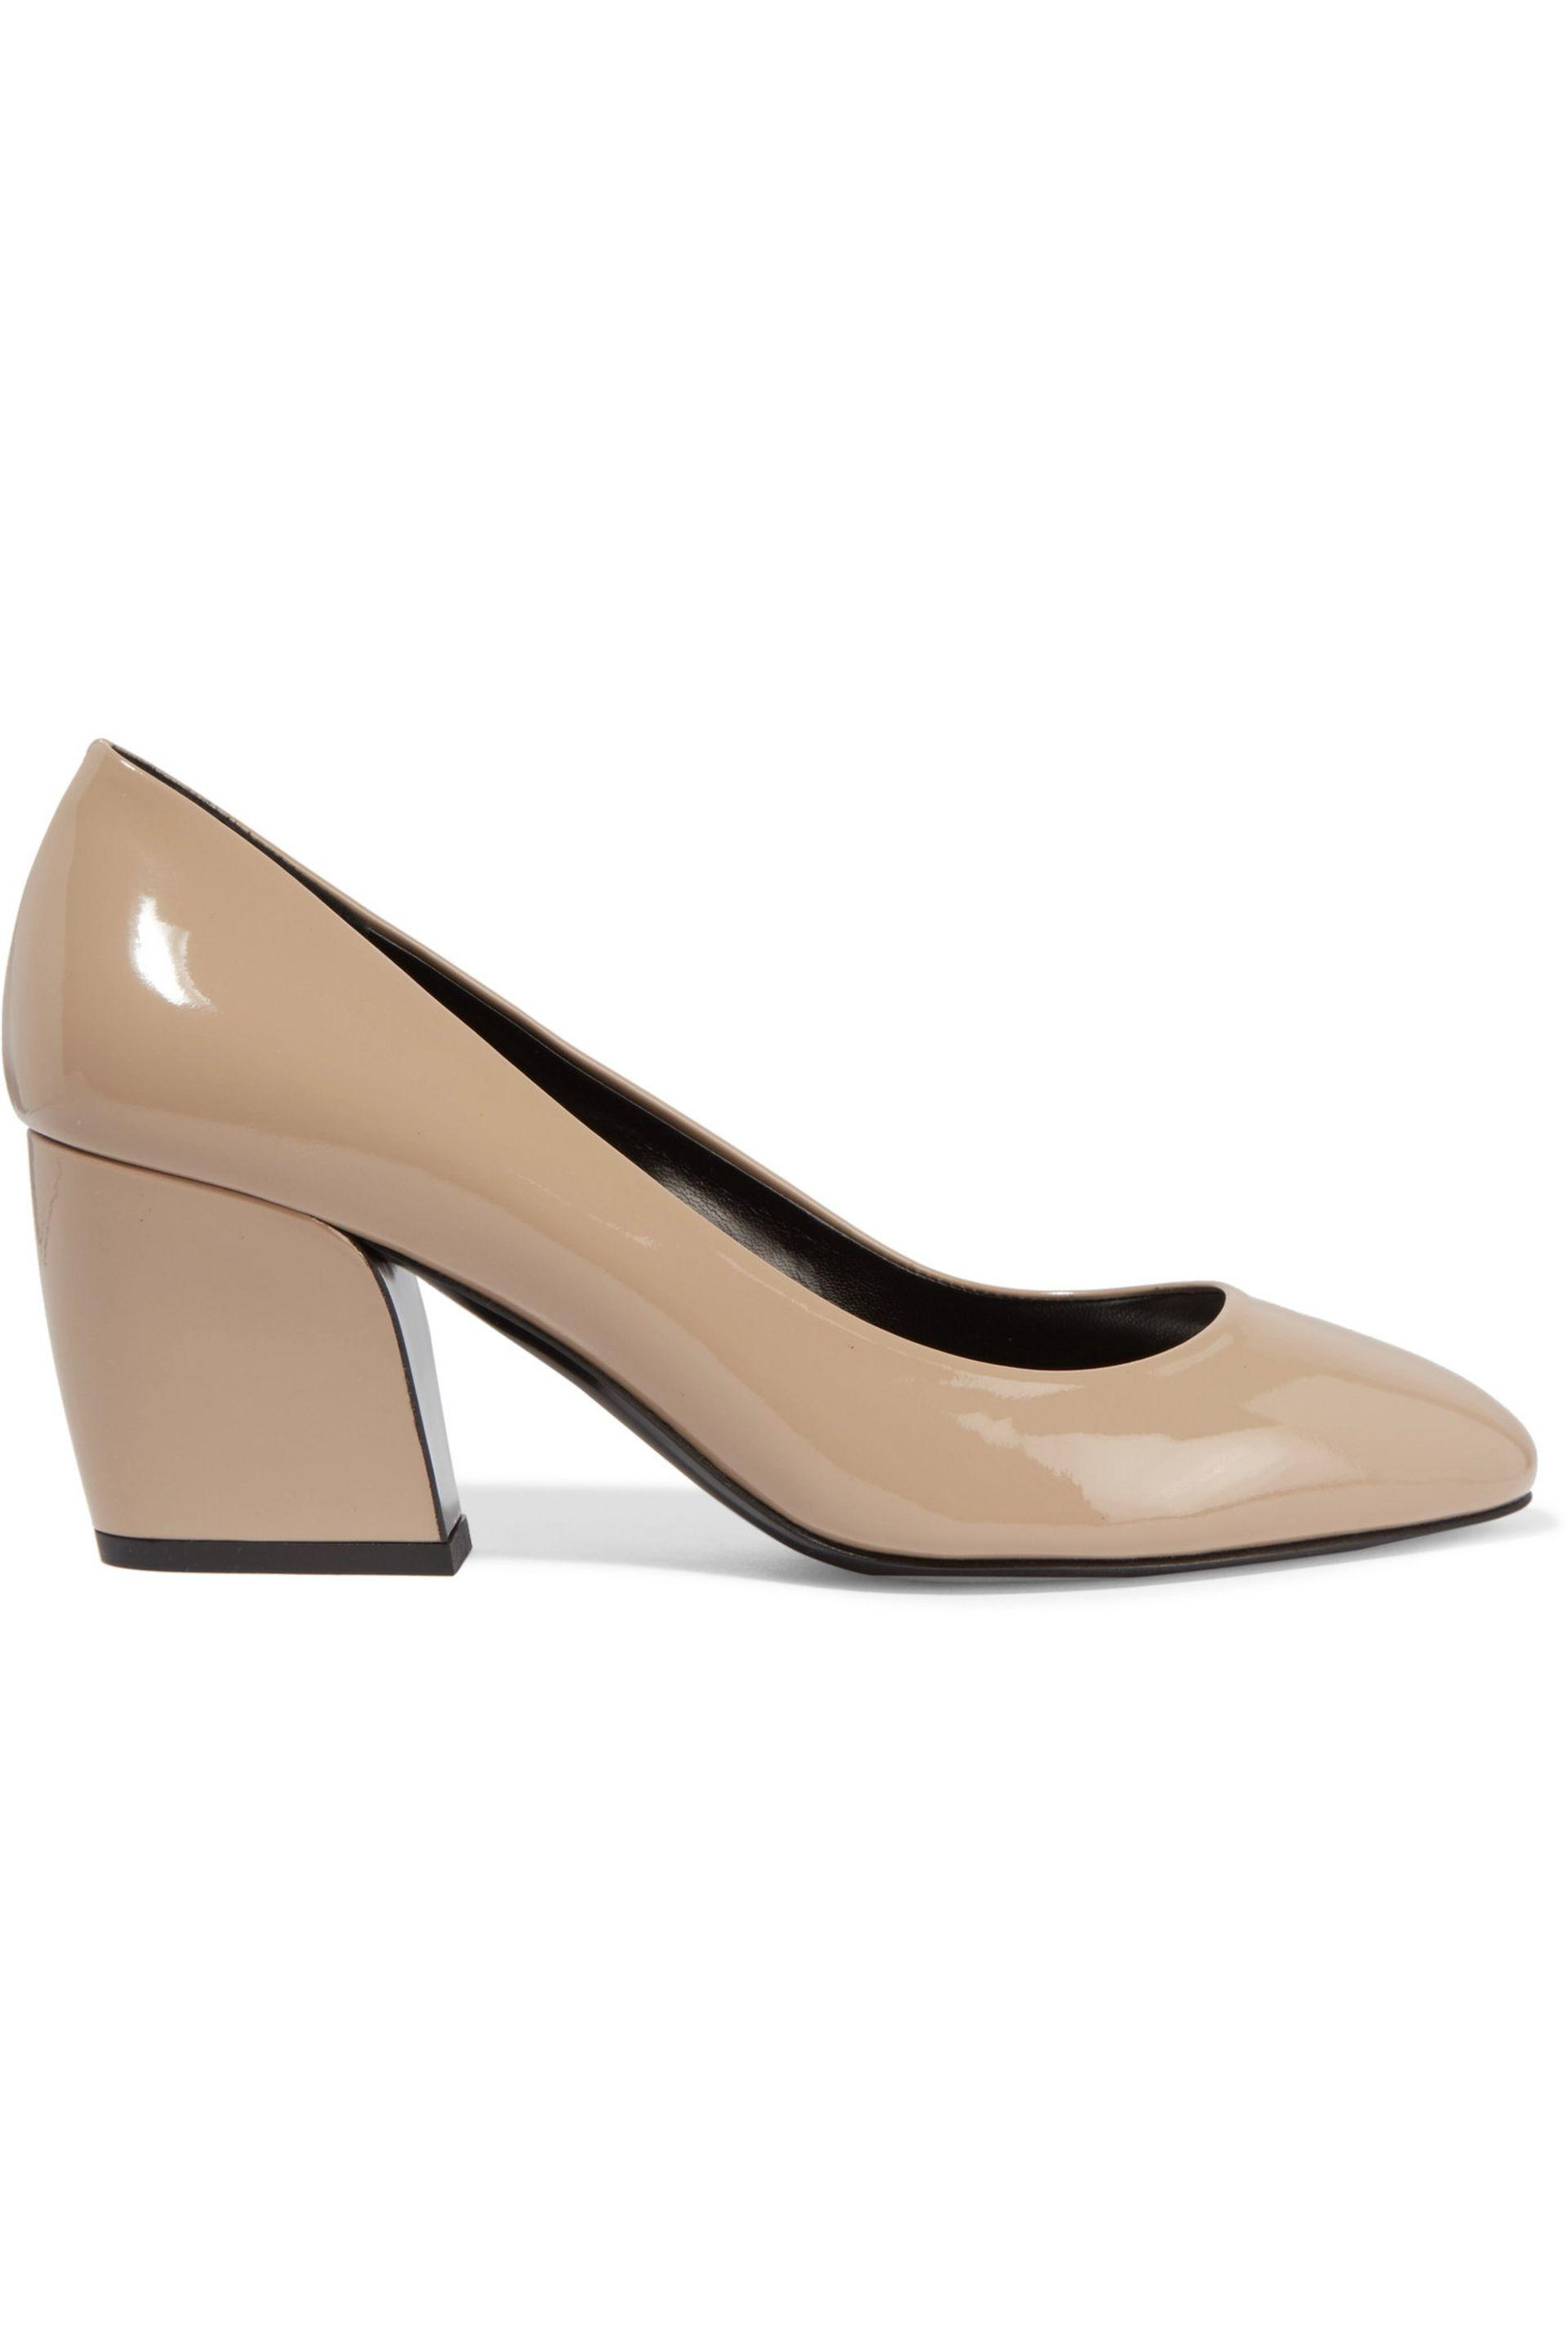 e5314c21b29 Pierre Hardy Calamity Patent-leather Pumps in Natural - Save ...